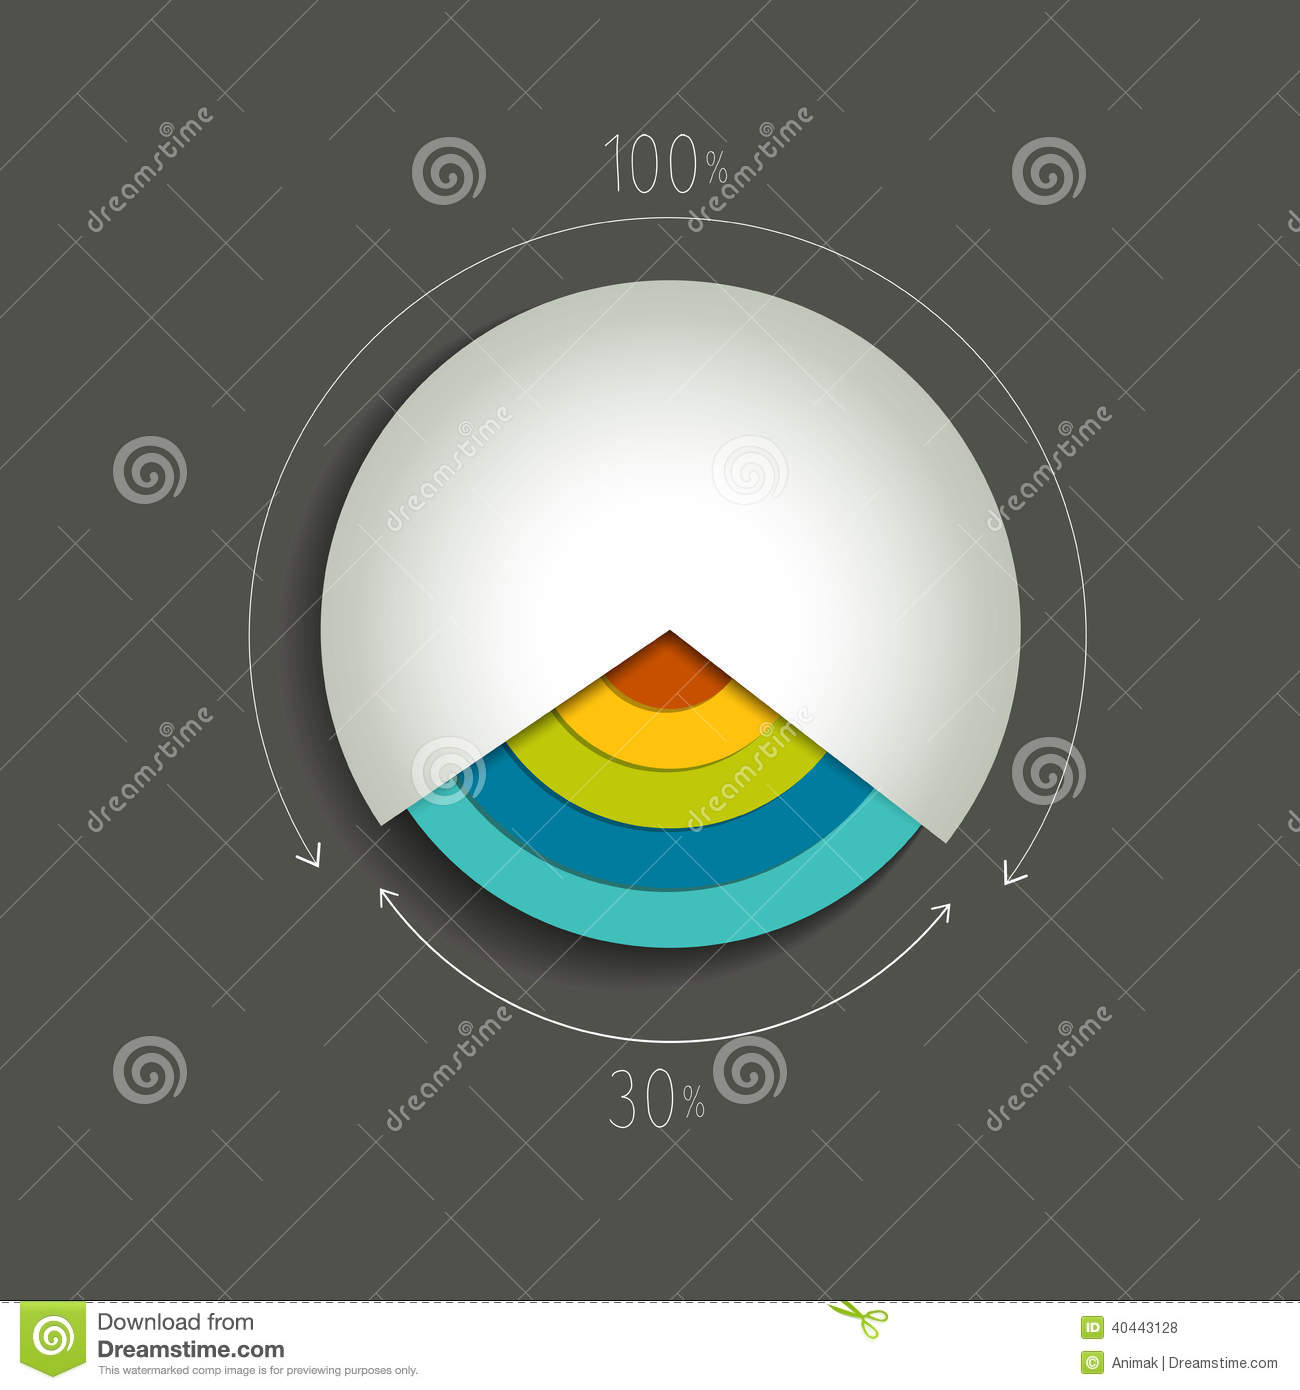 Circle color pie chart diagram.